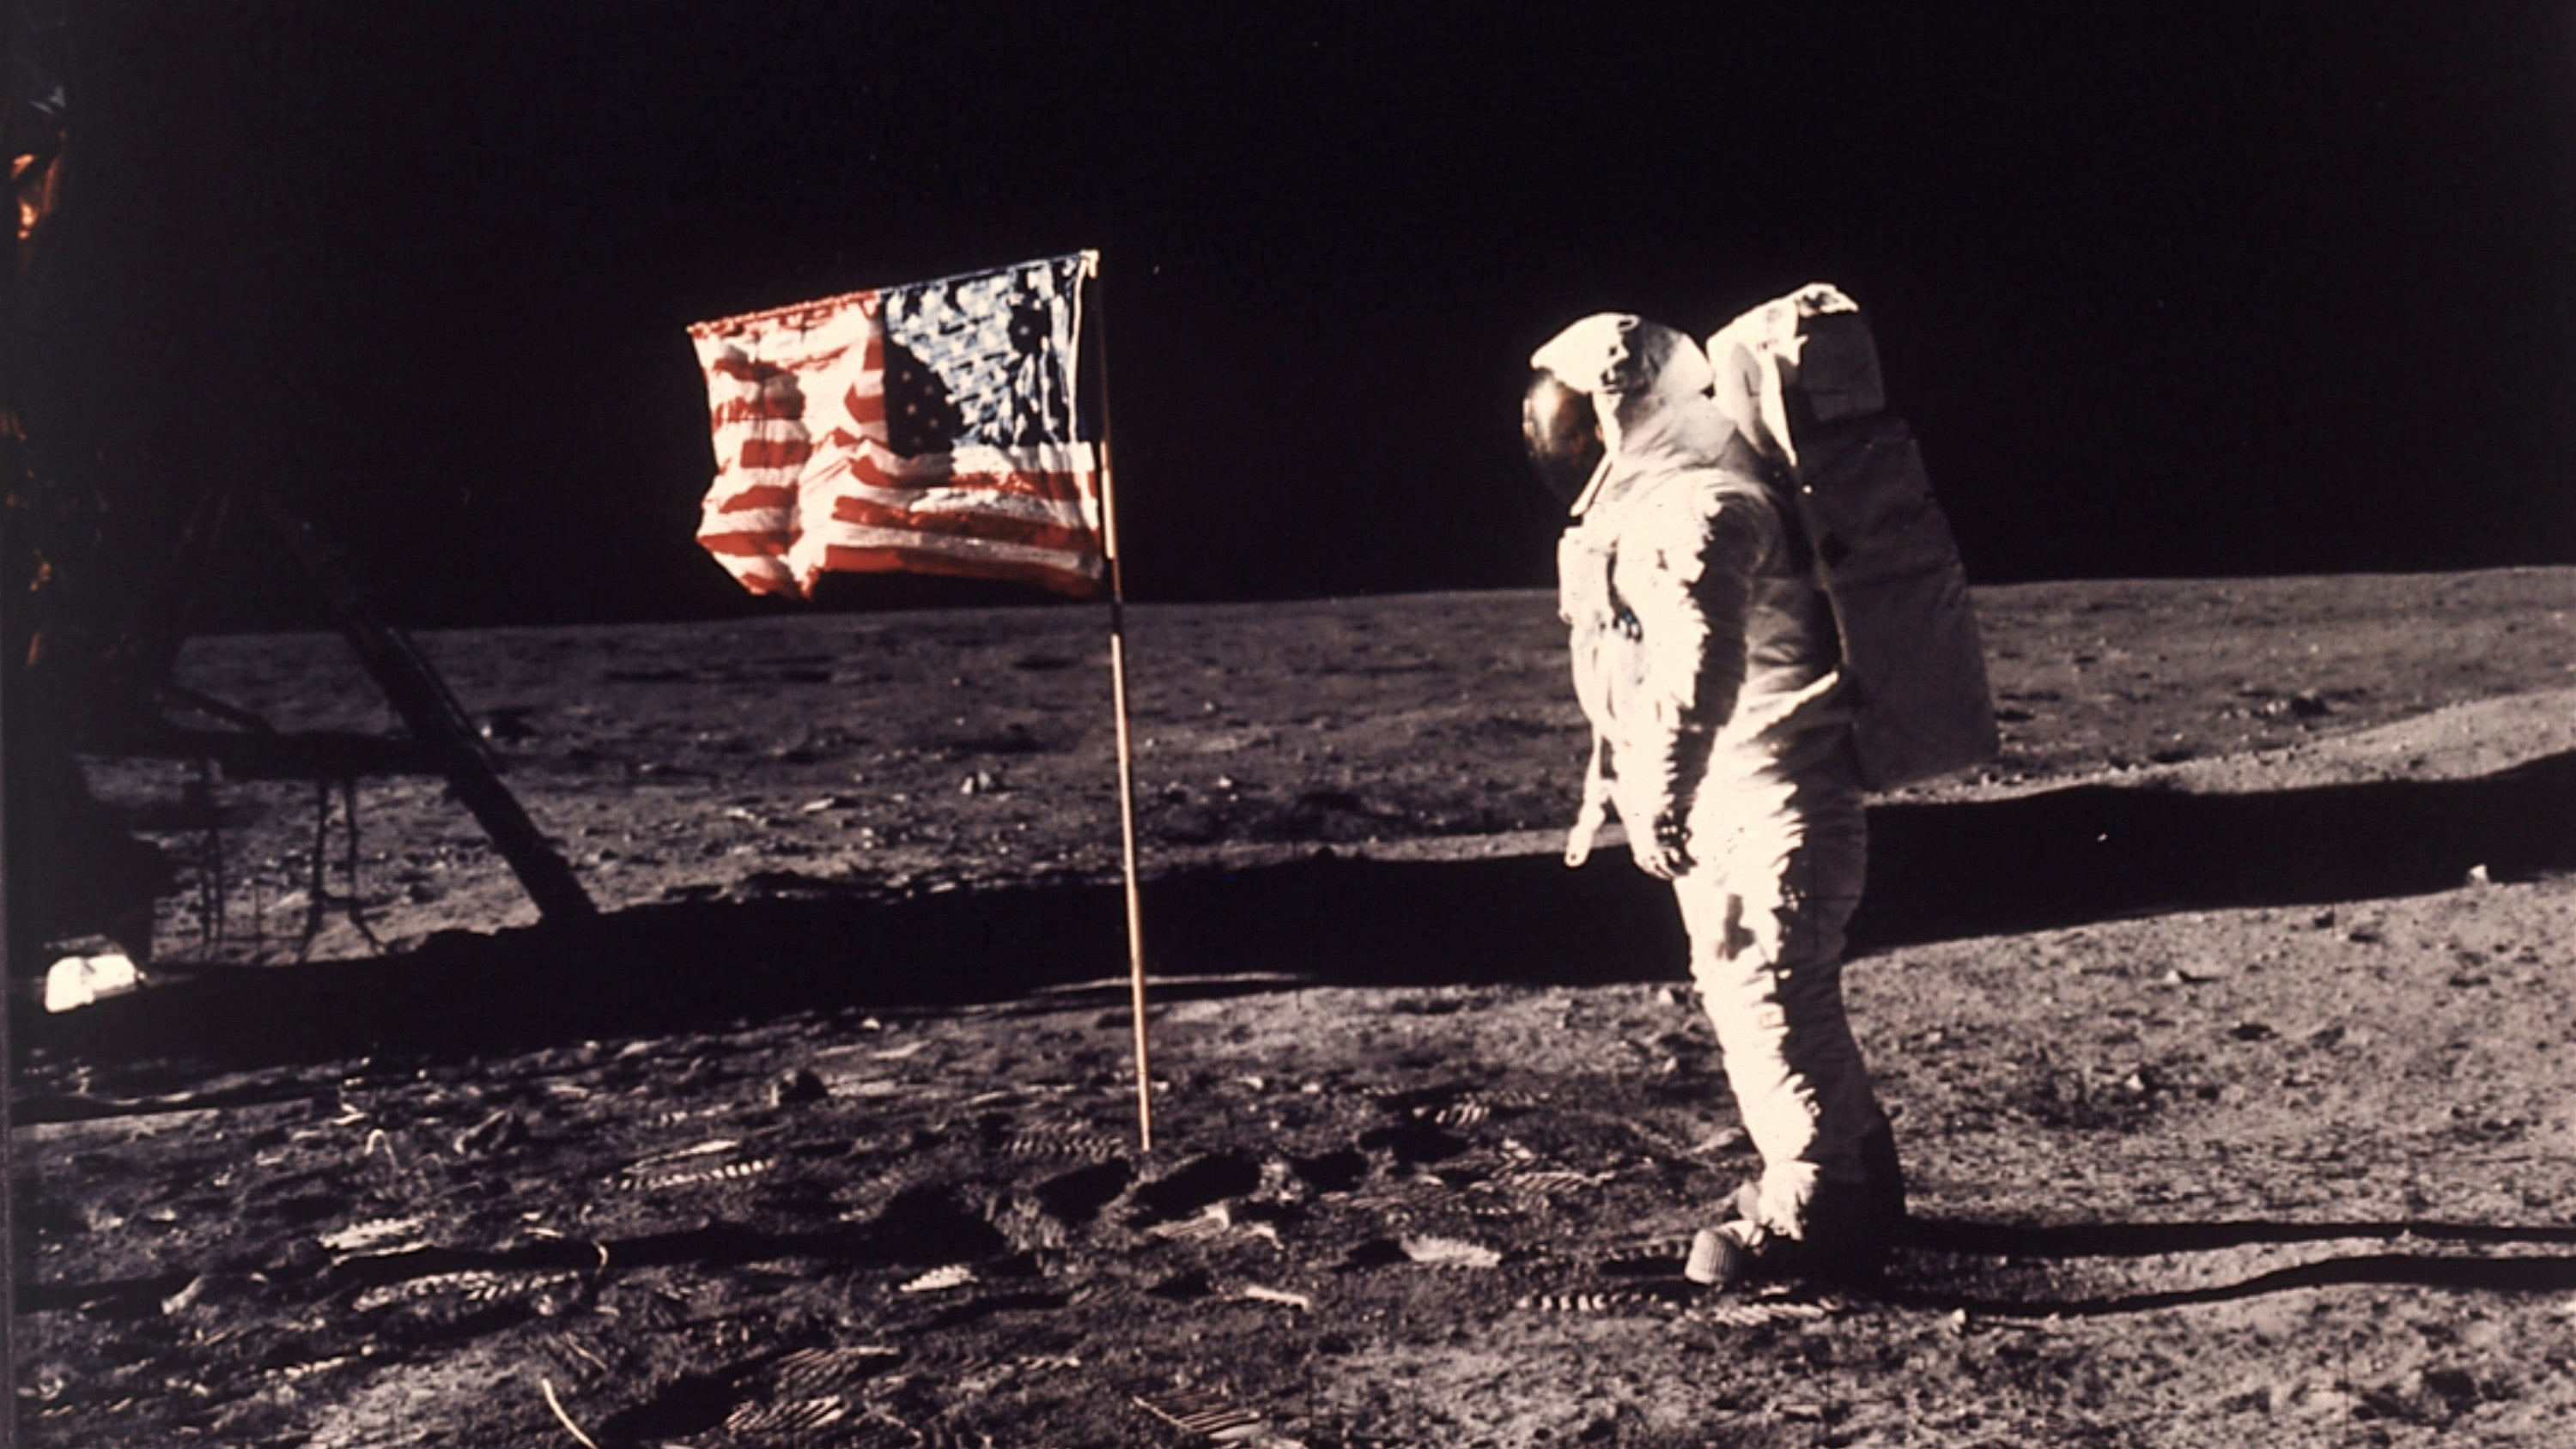 Former NASA Intern Scores $3 Million For Moon Landing Tapes He Bought At Auction